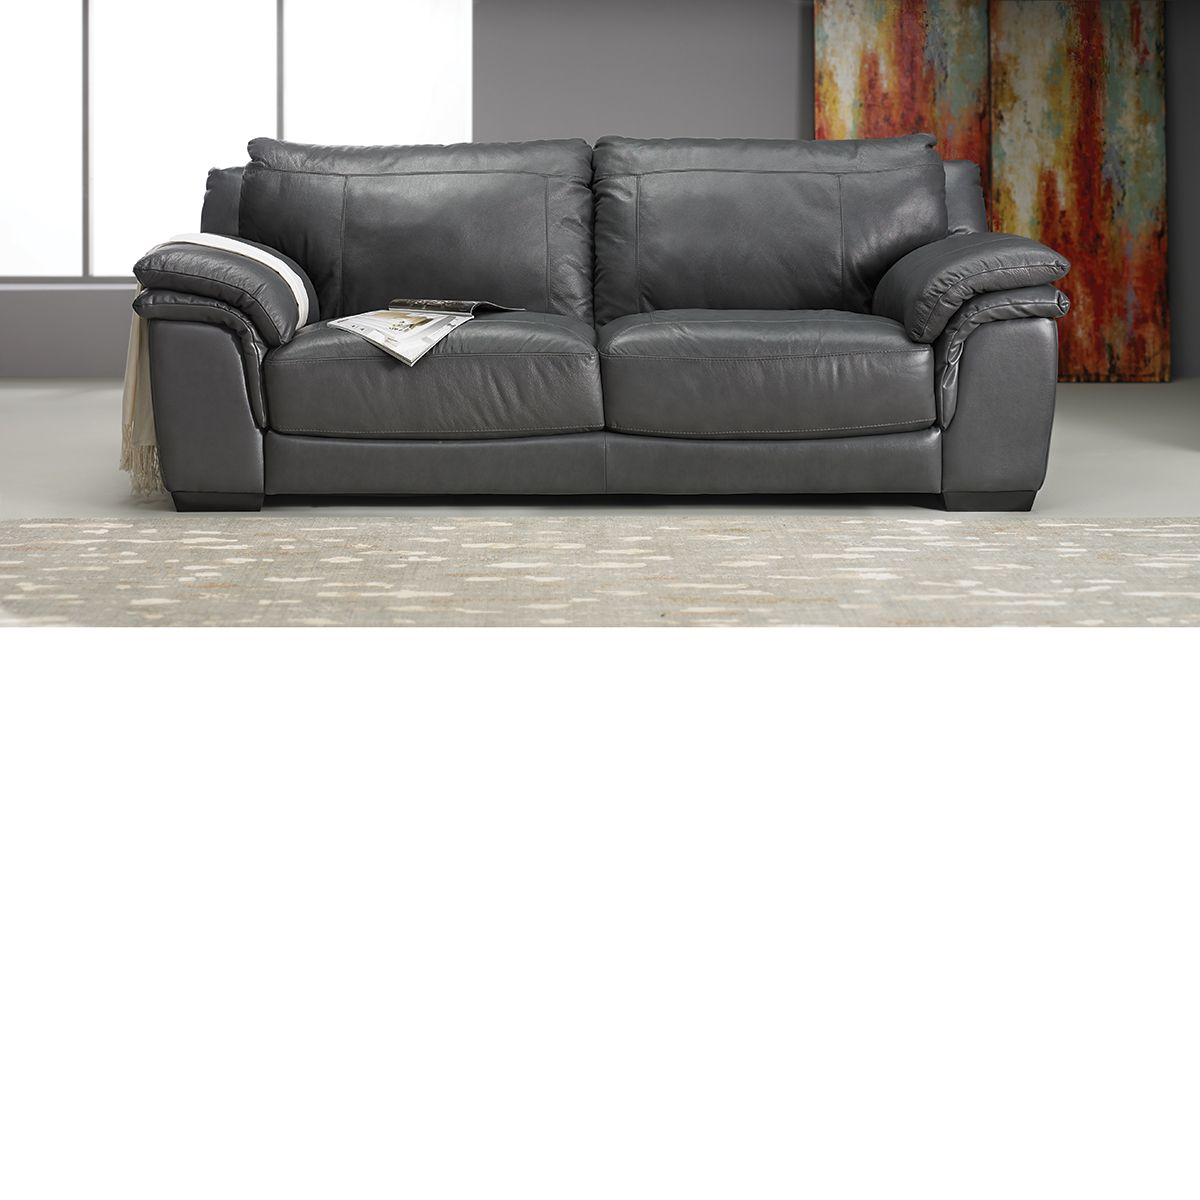 The Dump Furniture - Graphite Leather Sofa | New Products ...